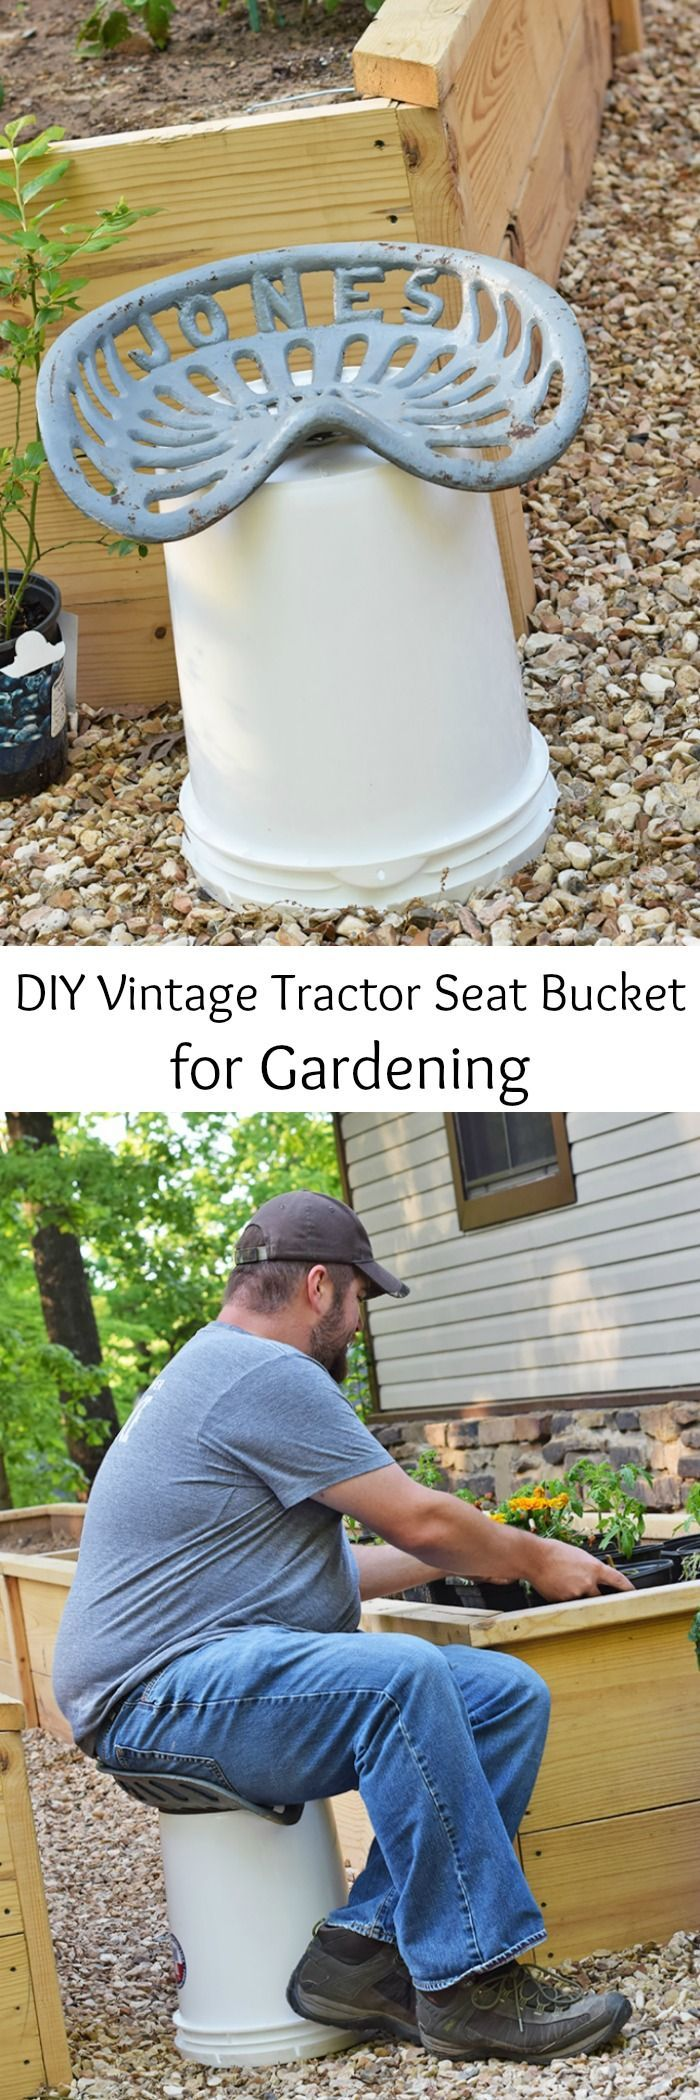 Learn How To Make Your Own DIY Vintage Tractor Seat Bucket Stool (or Jones  Rake Seat Bucket Stool), Perfect For Gardening And Homesteading.